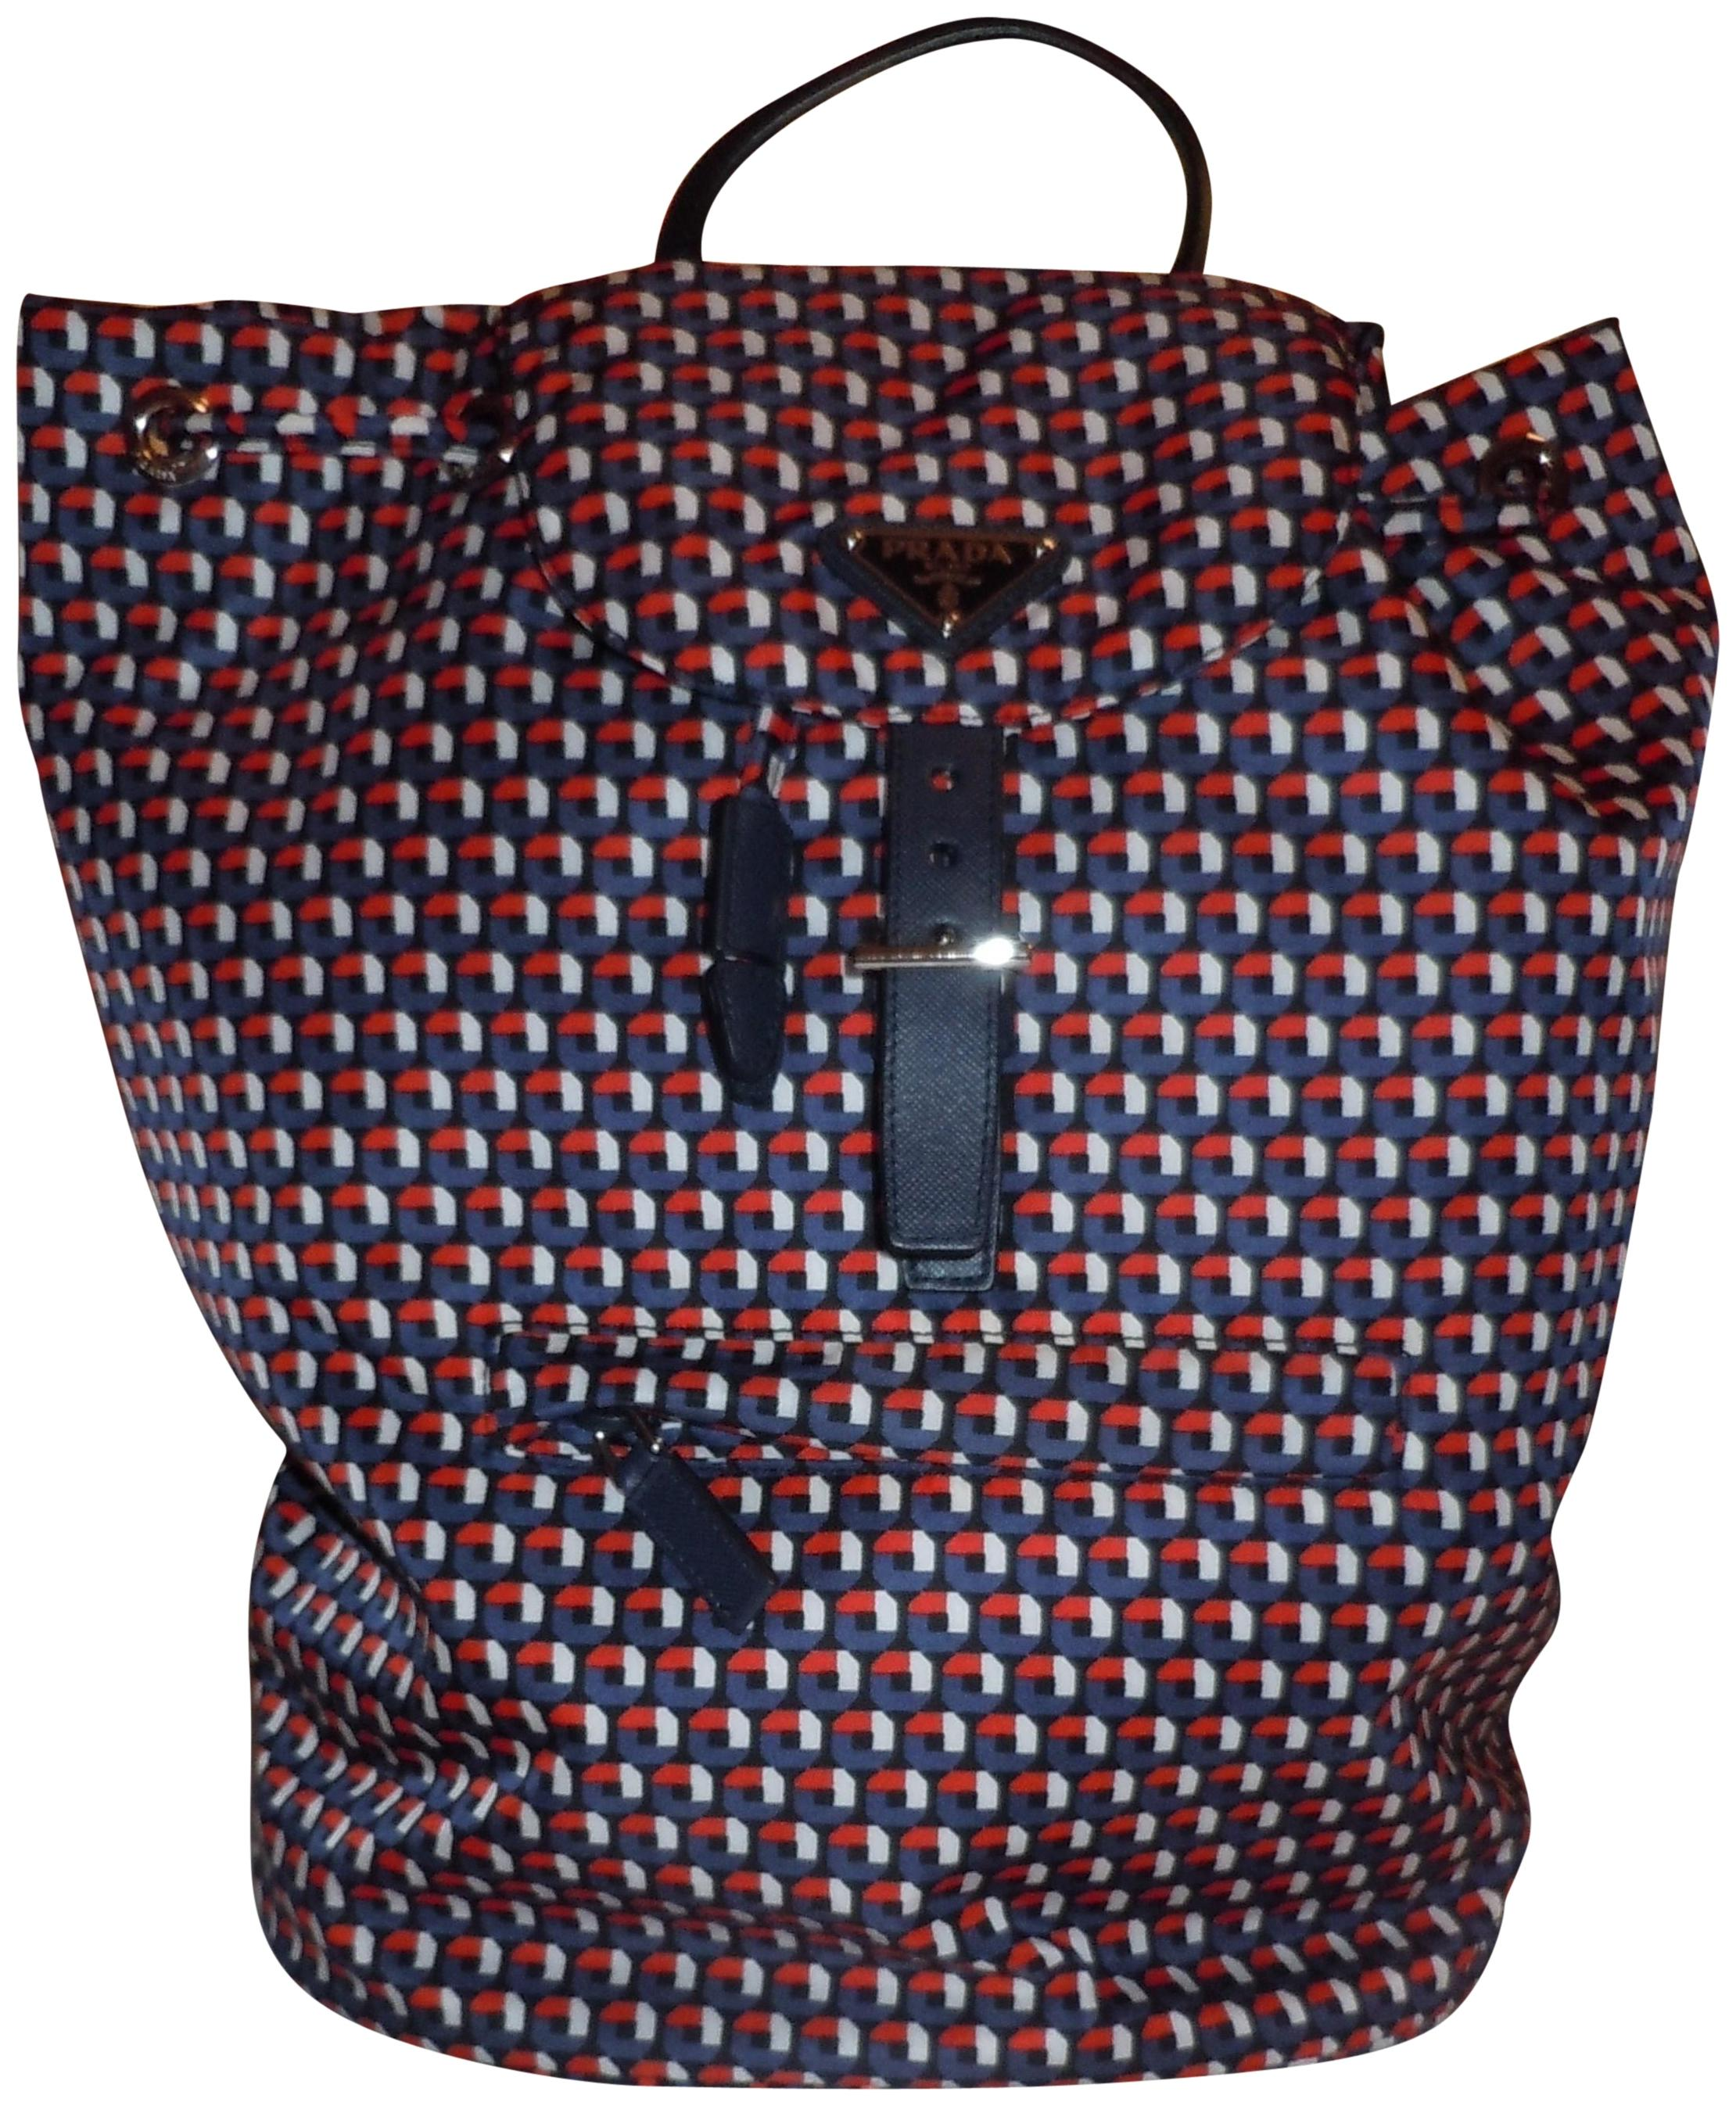 ba41eff9a402d ... cheap prada backpacks on sale up to 70 off at tradesy 03a06 4d372